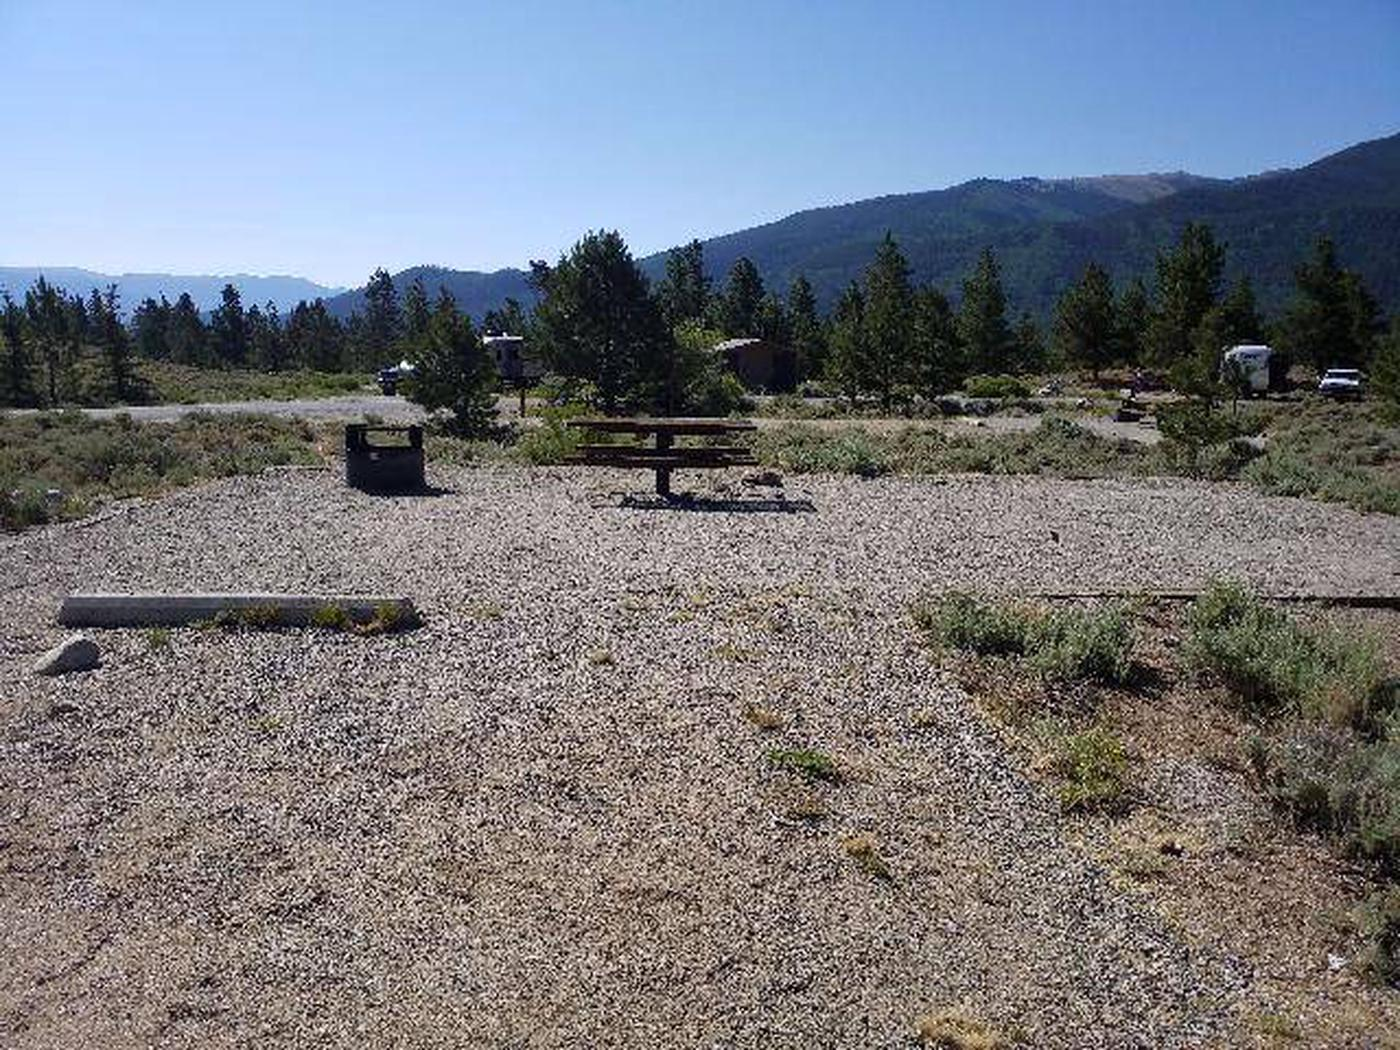 White Star Campground, site 22 picnic table and fire ring